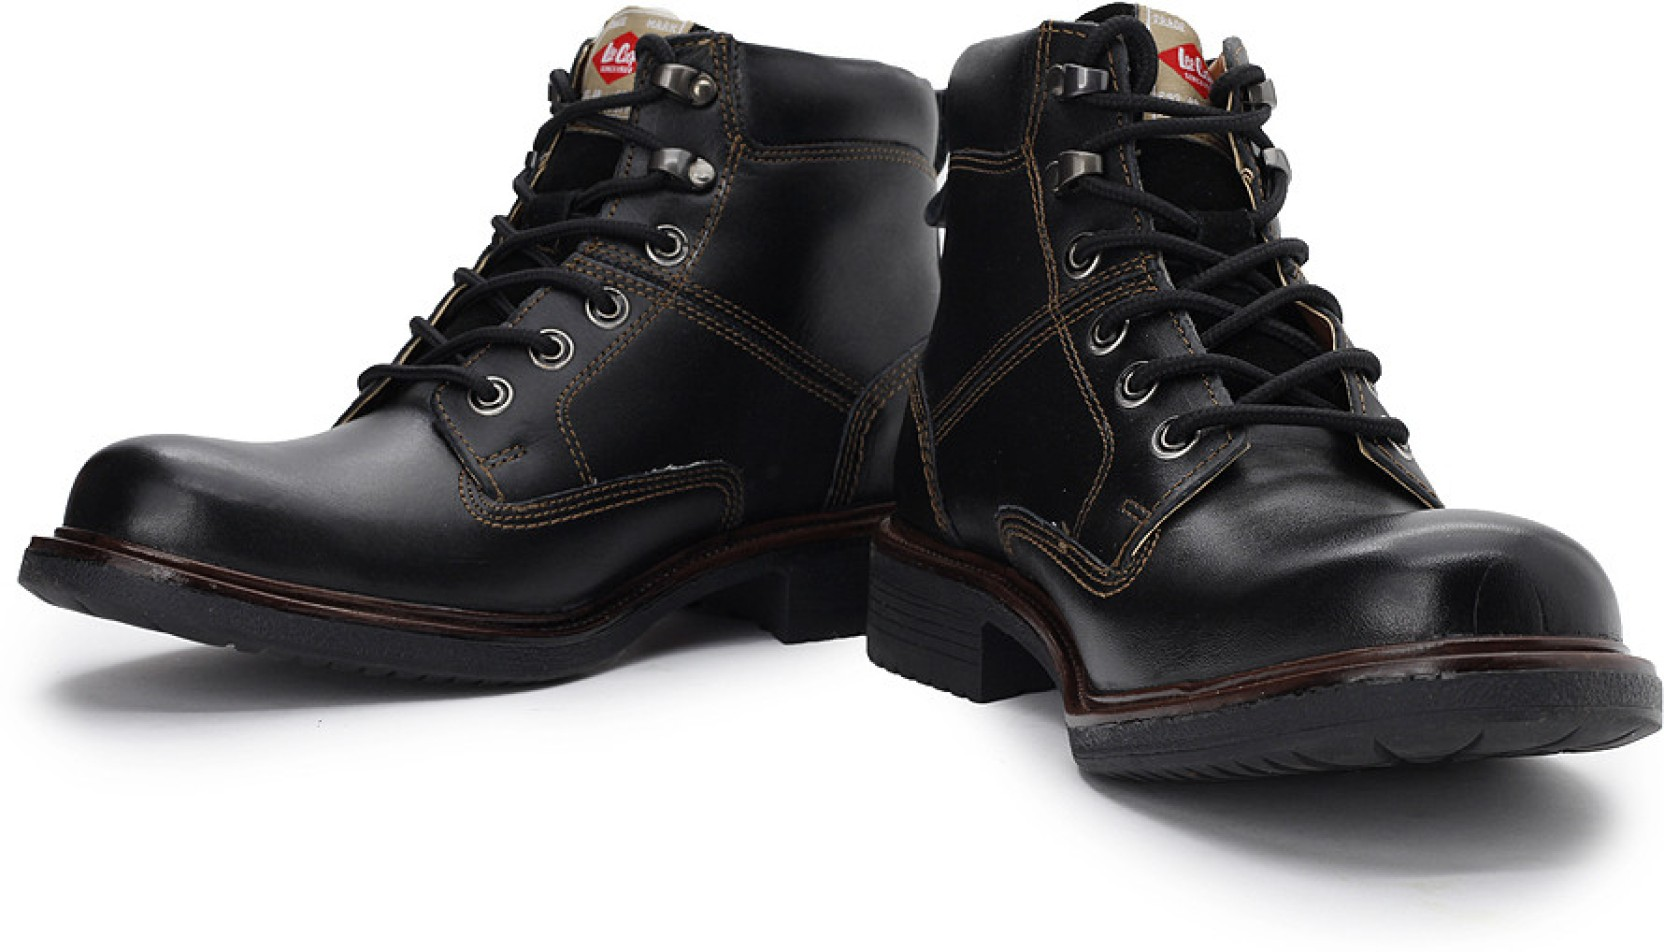 Lee Cooper Men Boots - Buy Black Color Lee Cooper Men ...